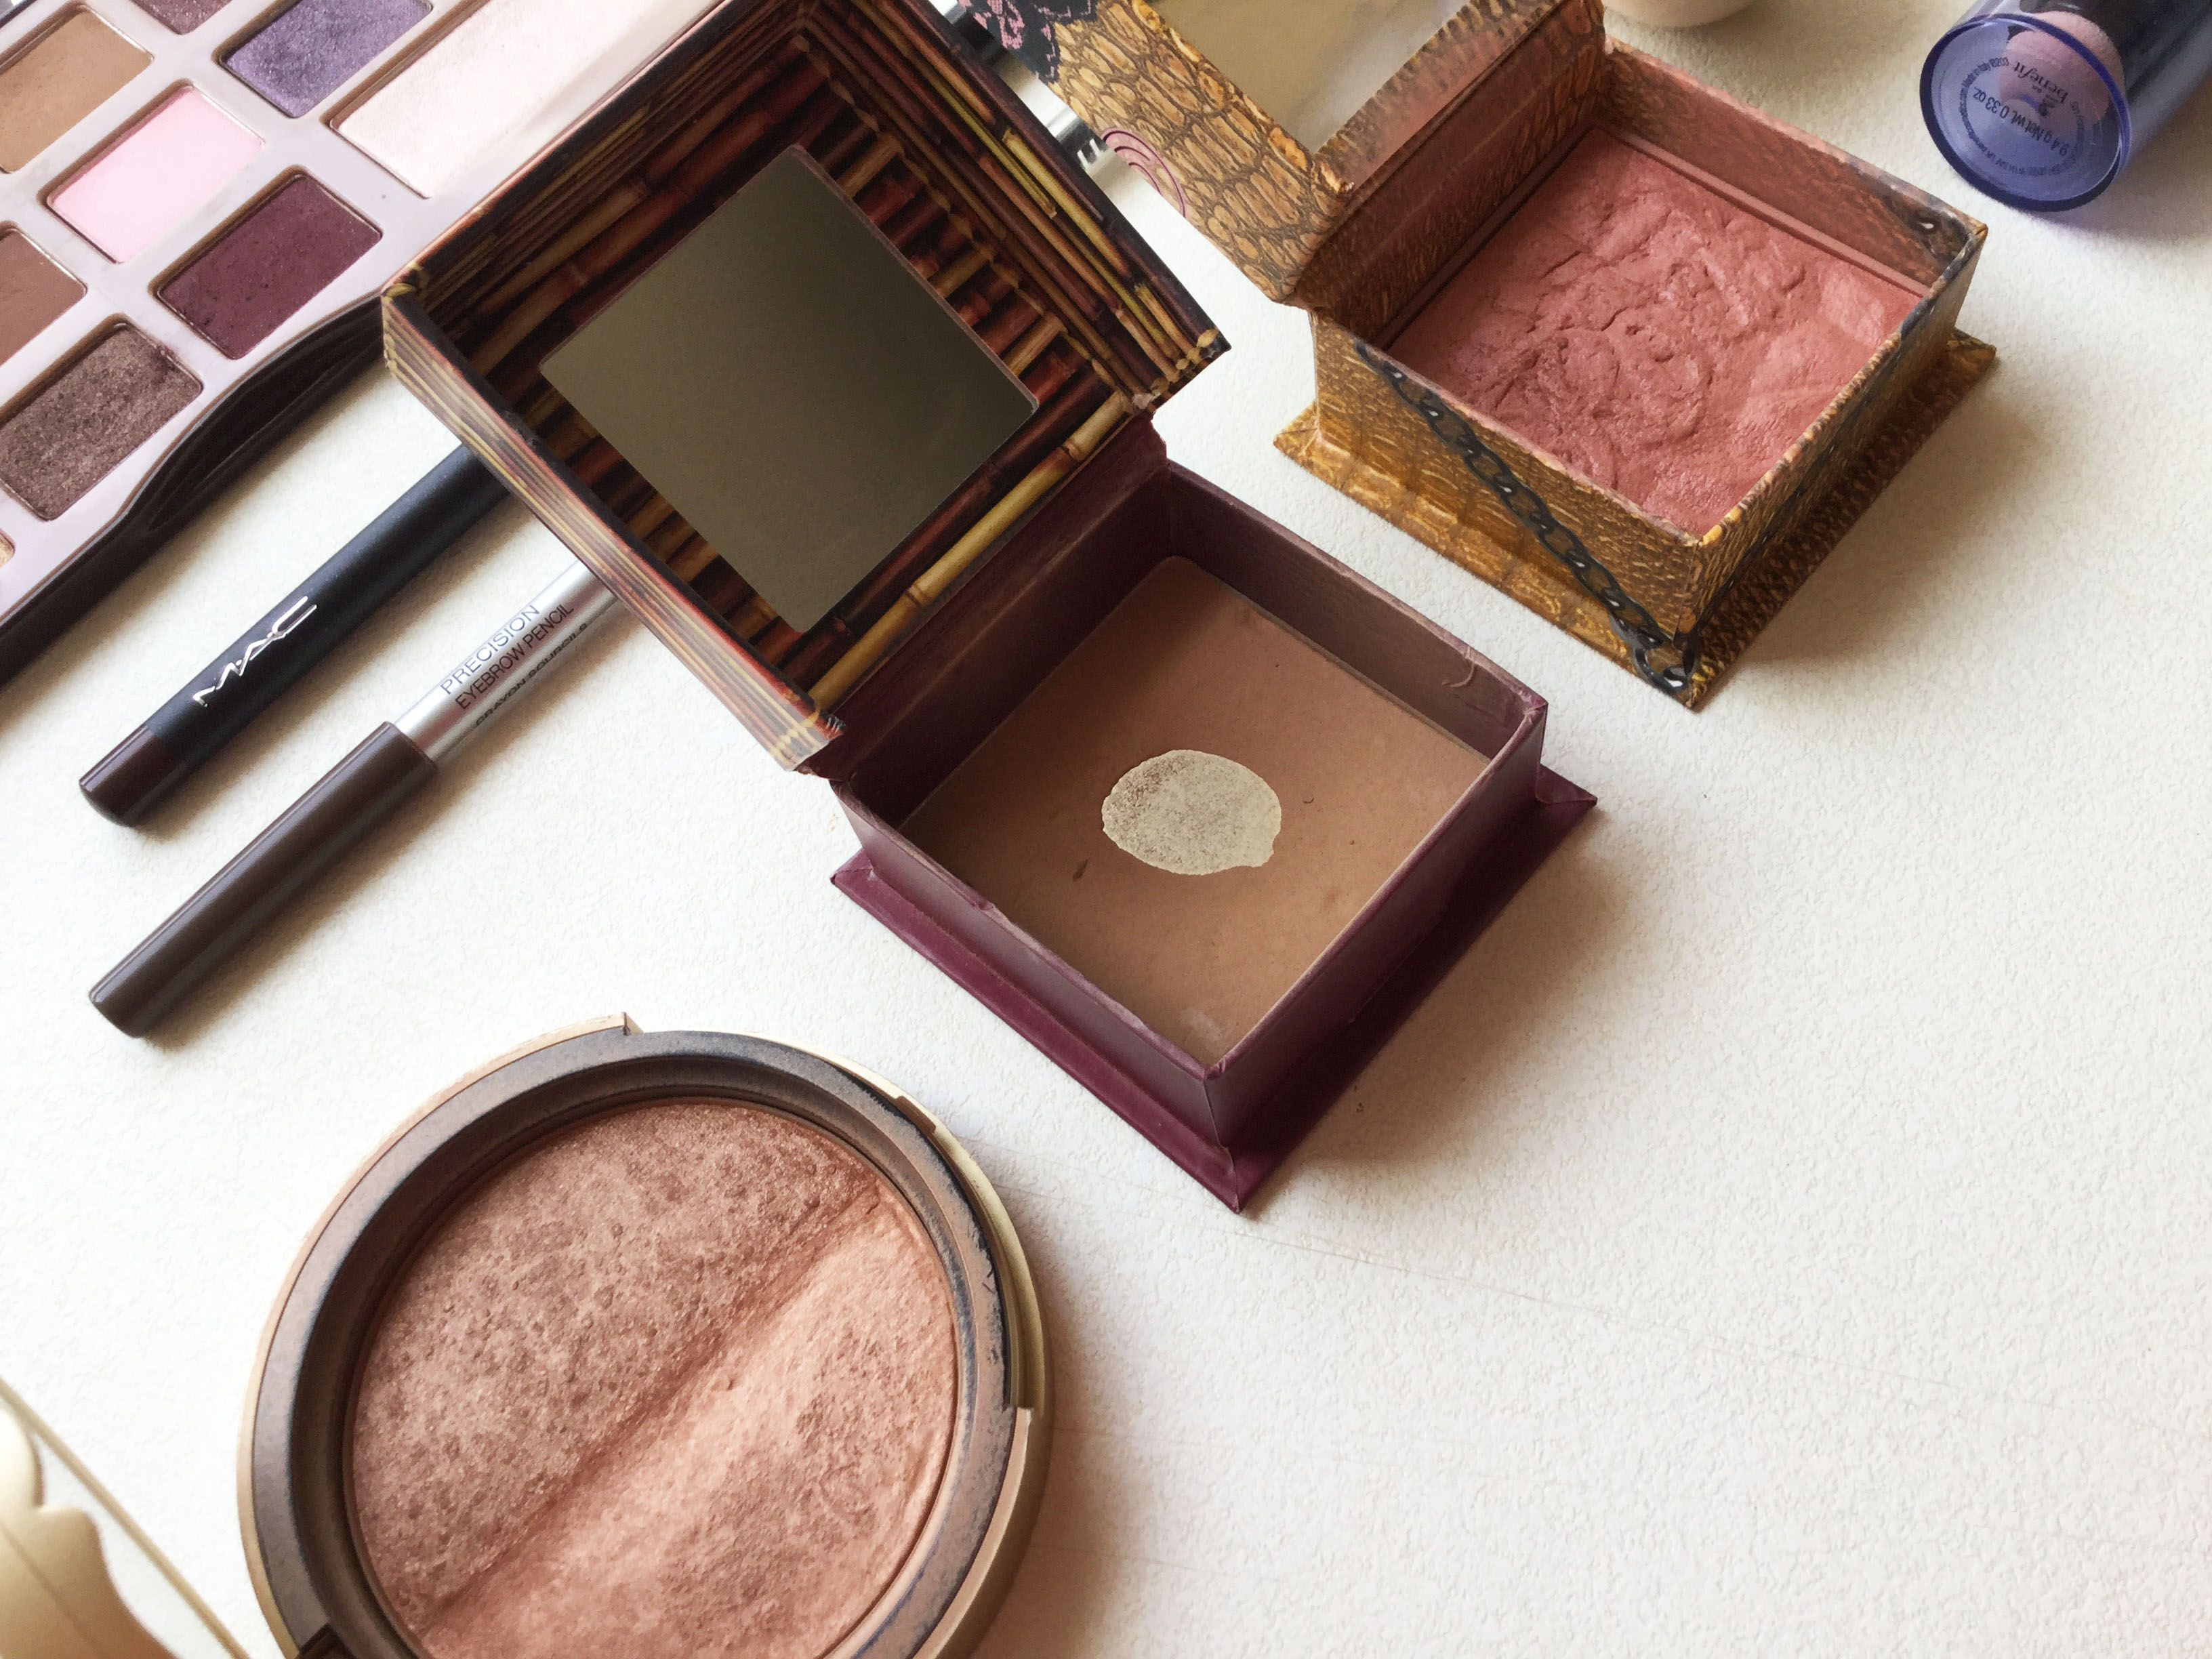 Sun Bunny de Too Faced, Hoola y Rockateur de Benefit.